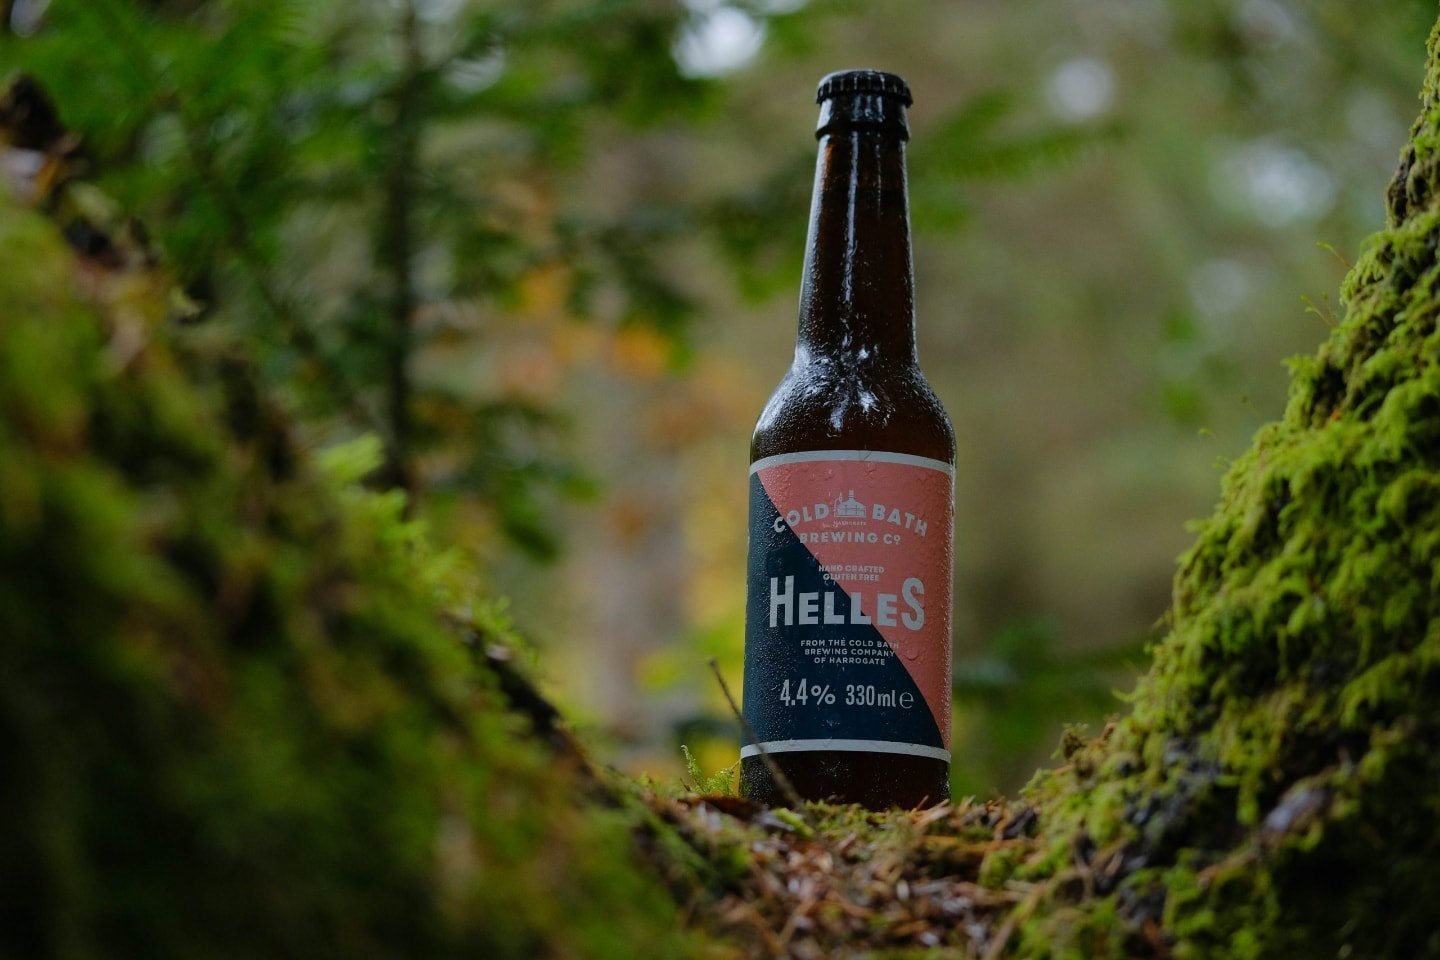 Cold Bath Brewing Co Hand Crafted Helles Bottle